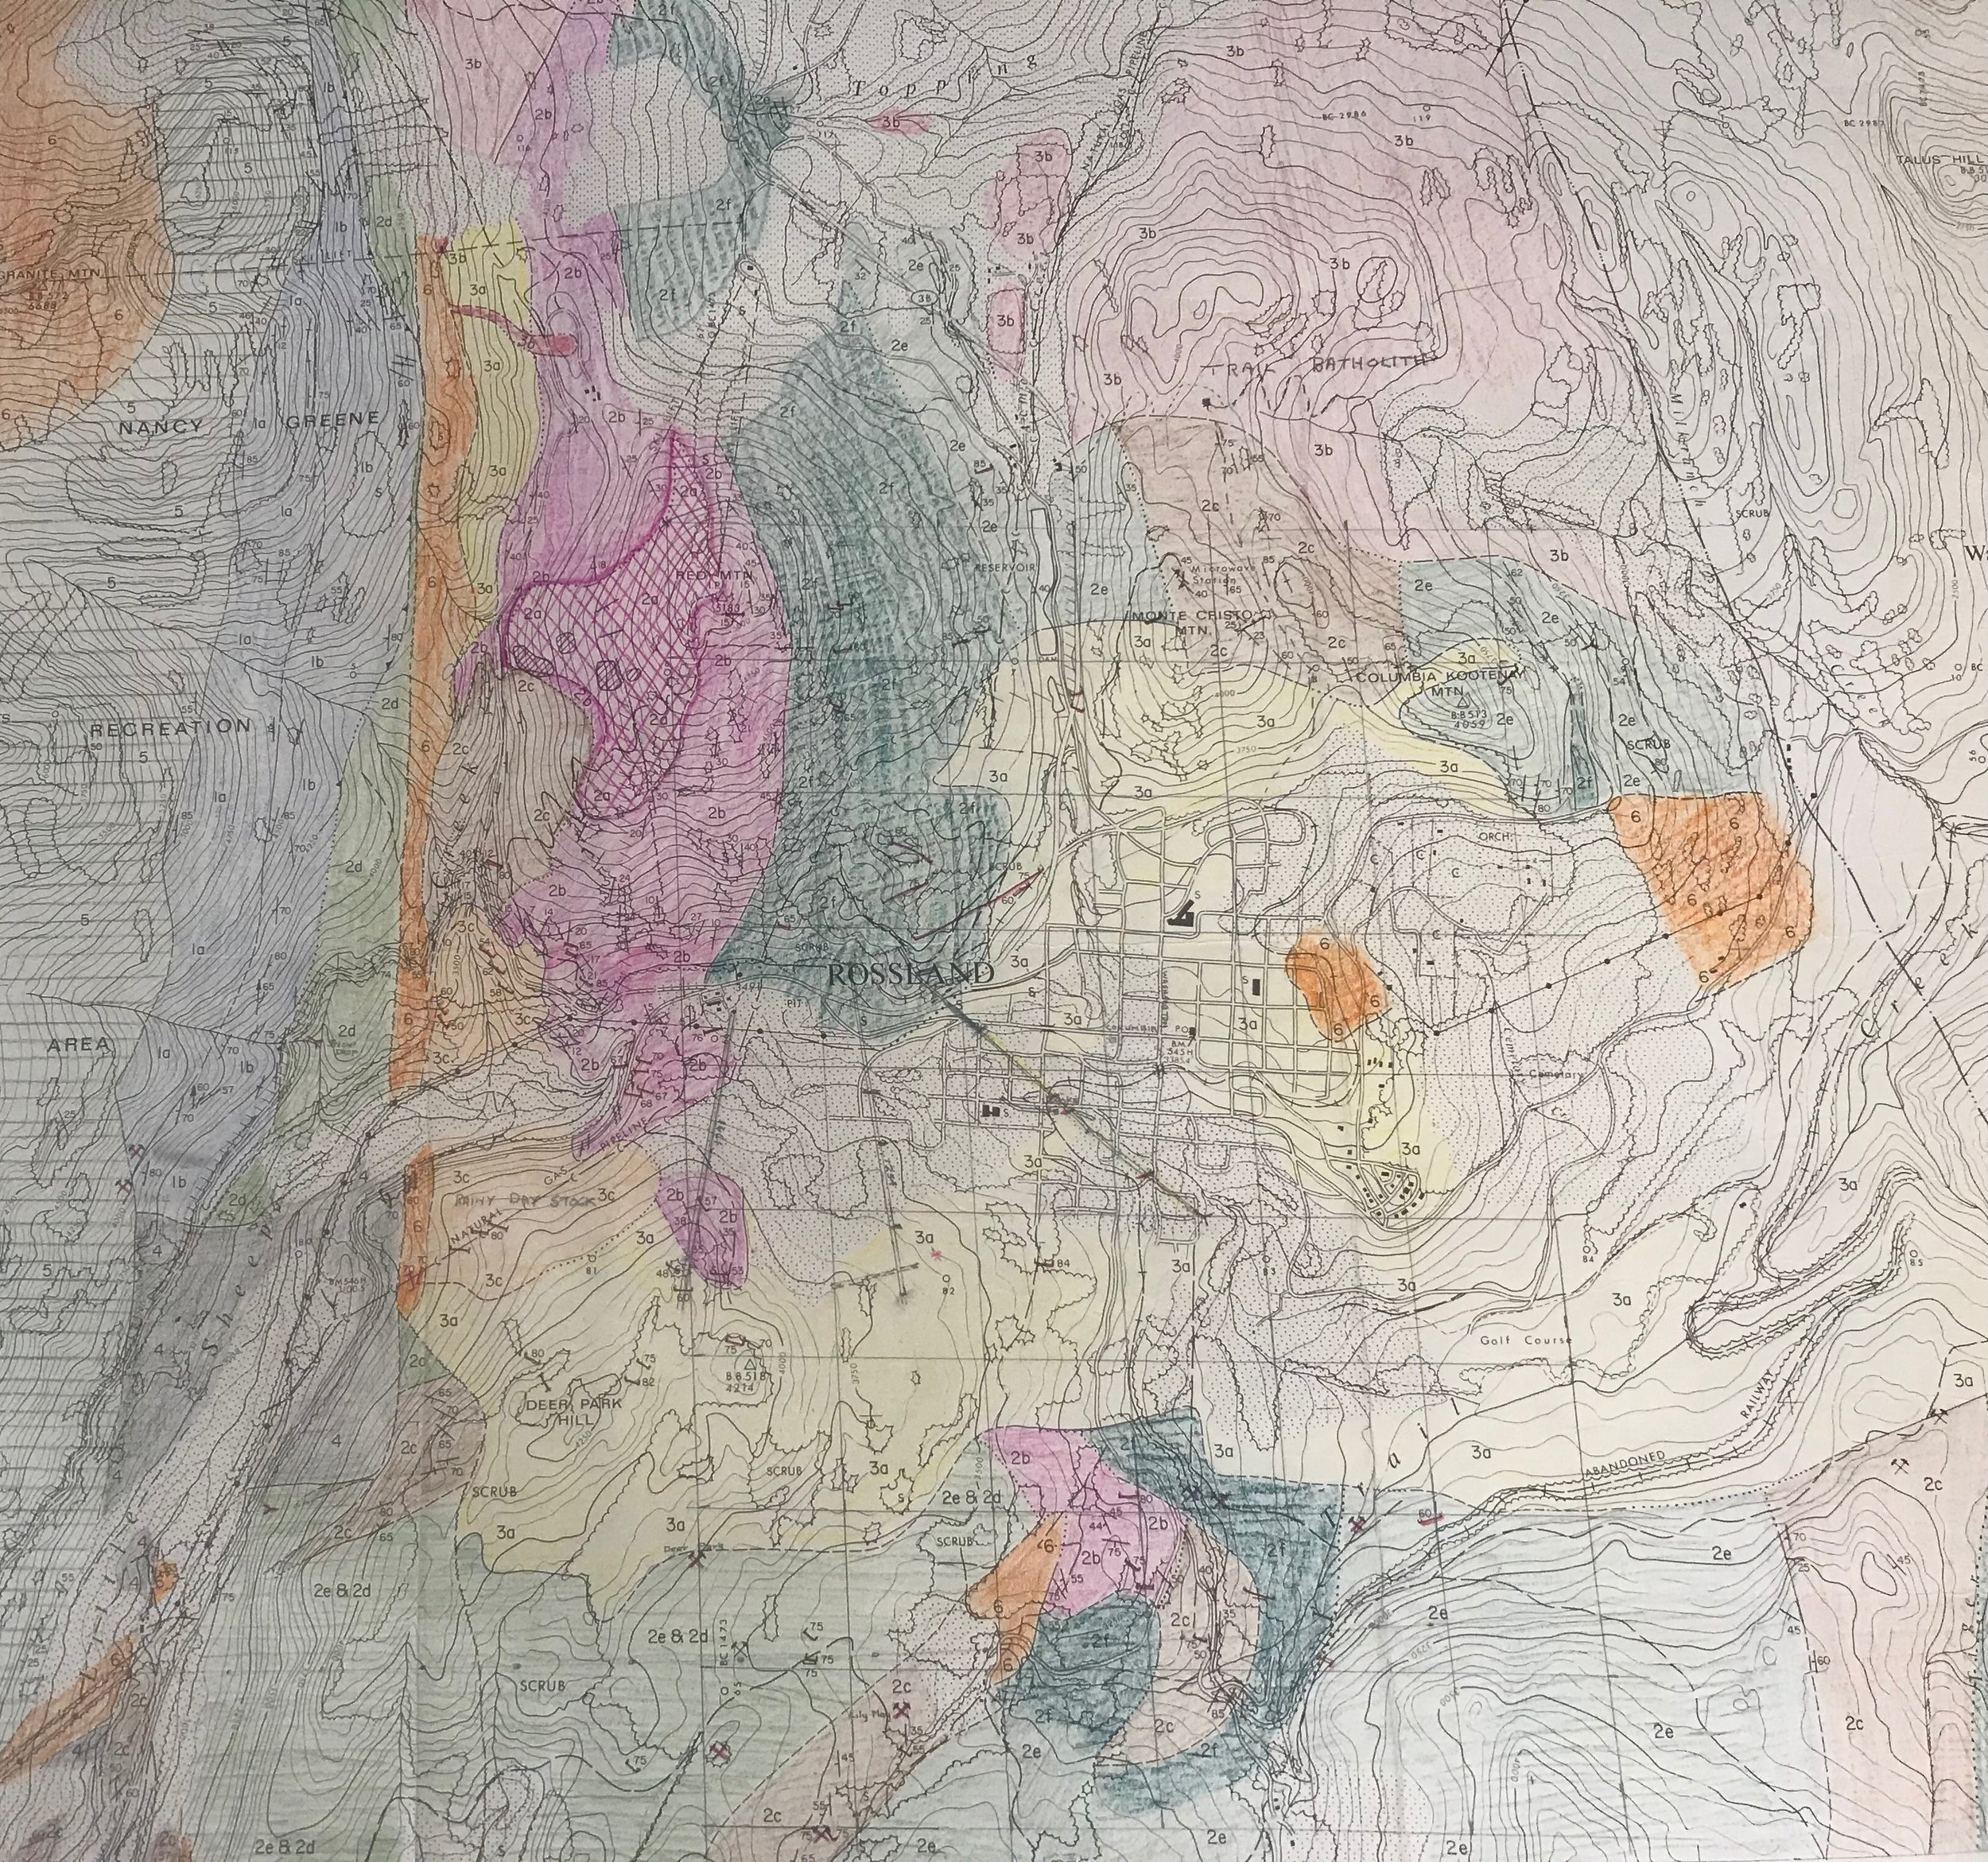 Colour-coded map of the Rossland area, showing different geological features. Map created by Cominco (now Teck Trail Operations) See key below. (click for a closer look)